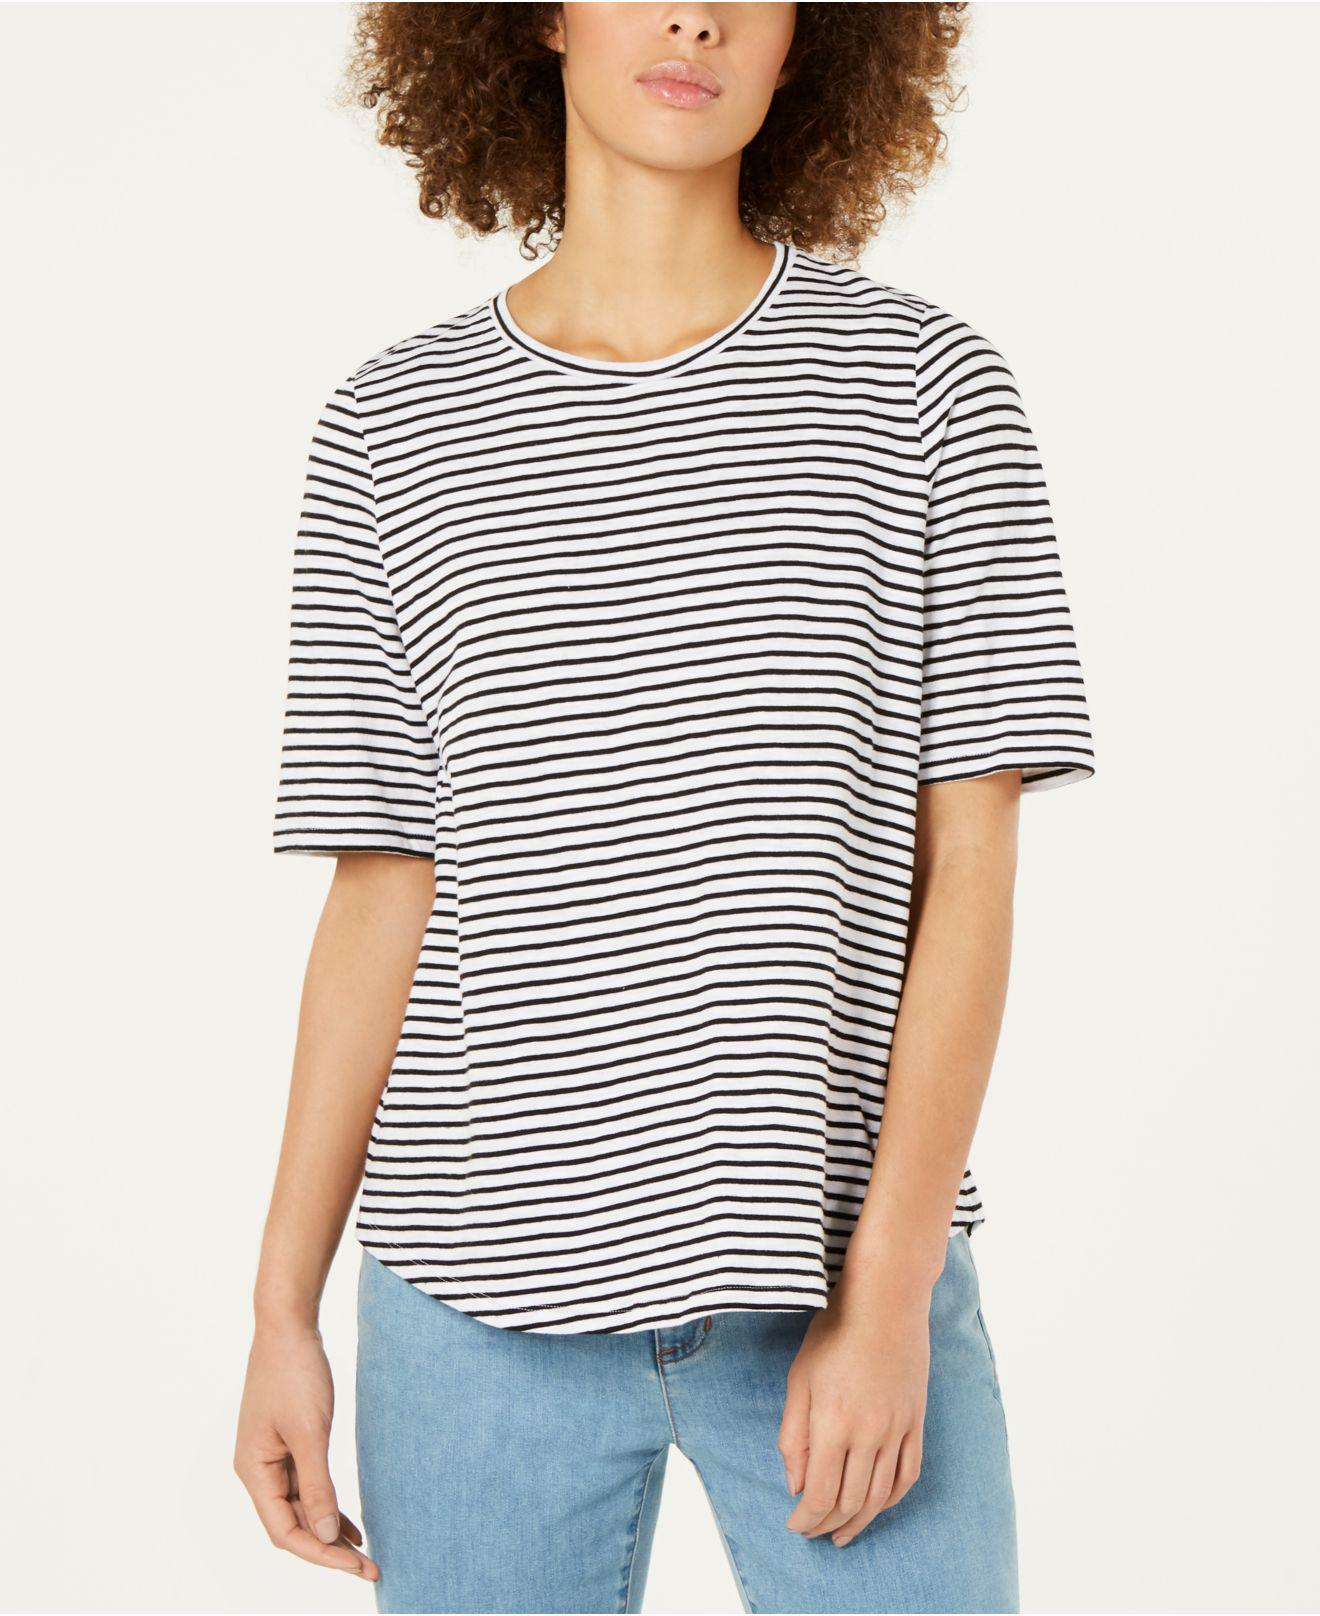 86d8364b812 Lyst - Eileen Fisher Striped Crewneck Tee in Black - Save 45%